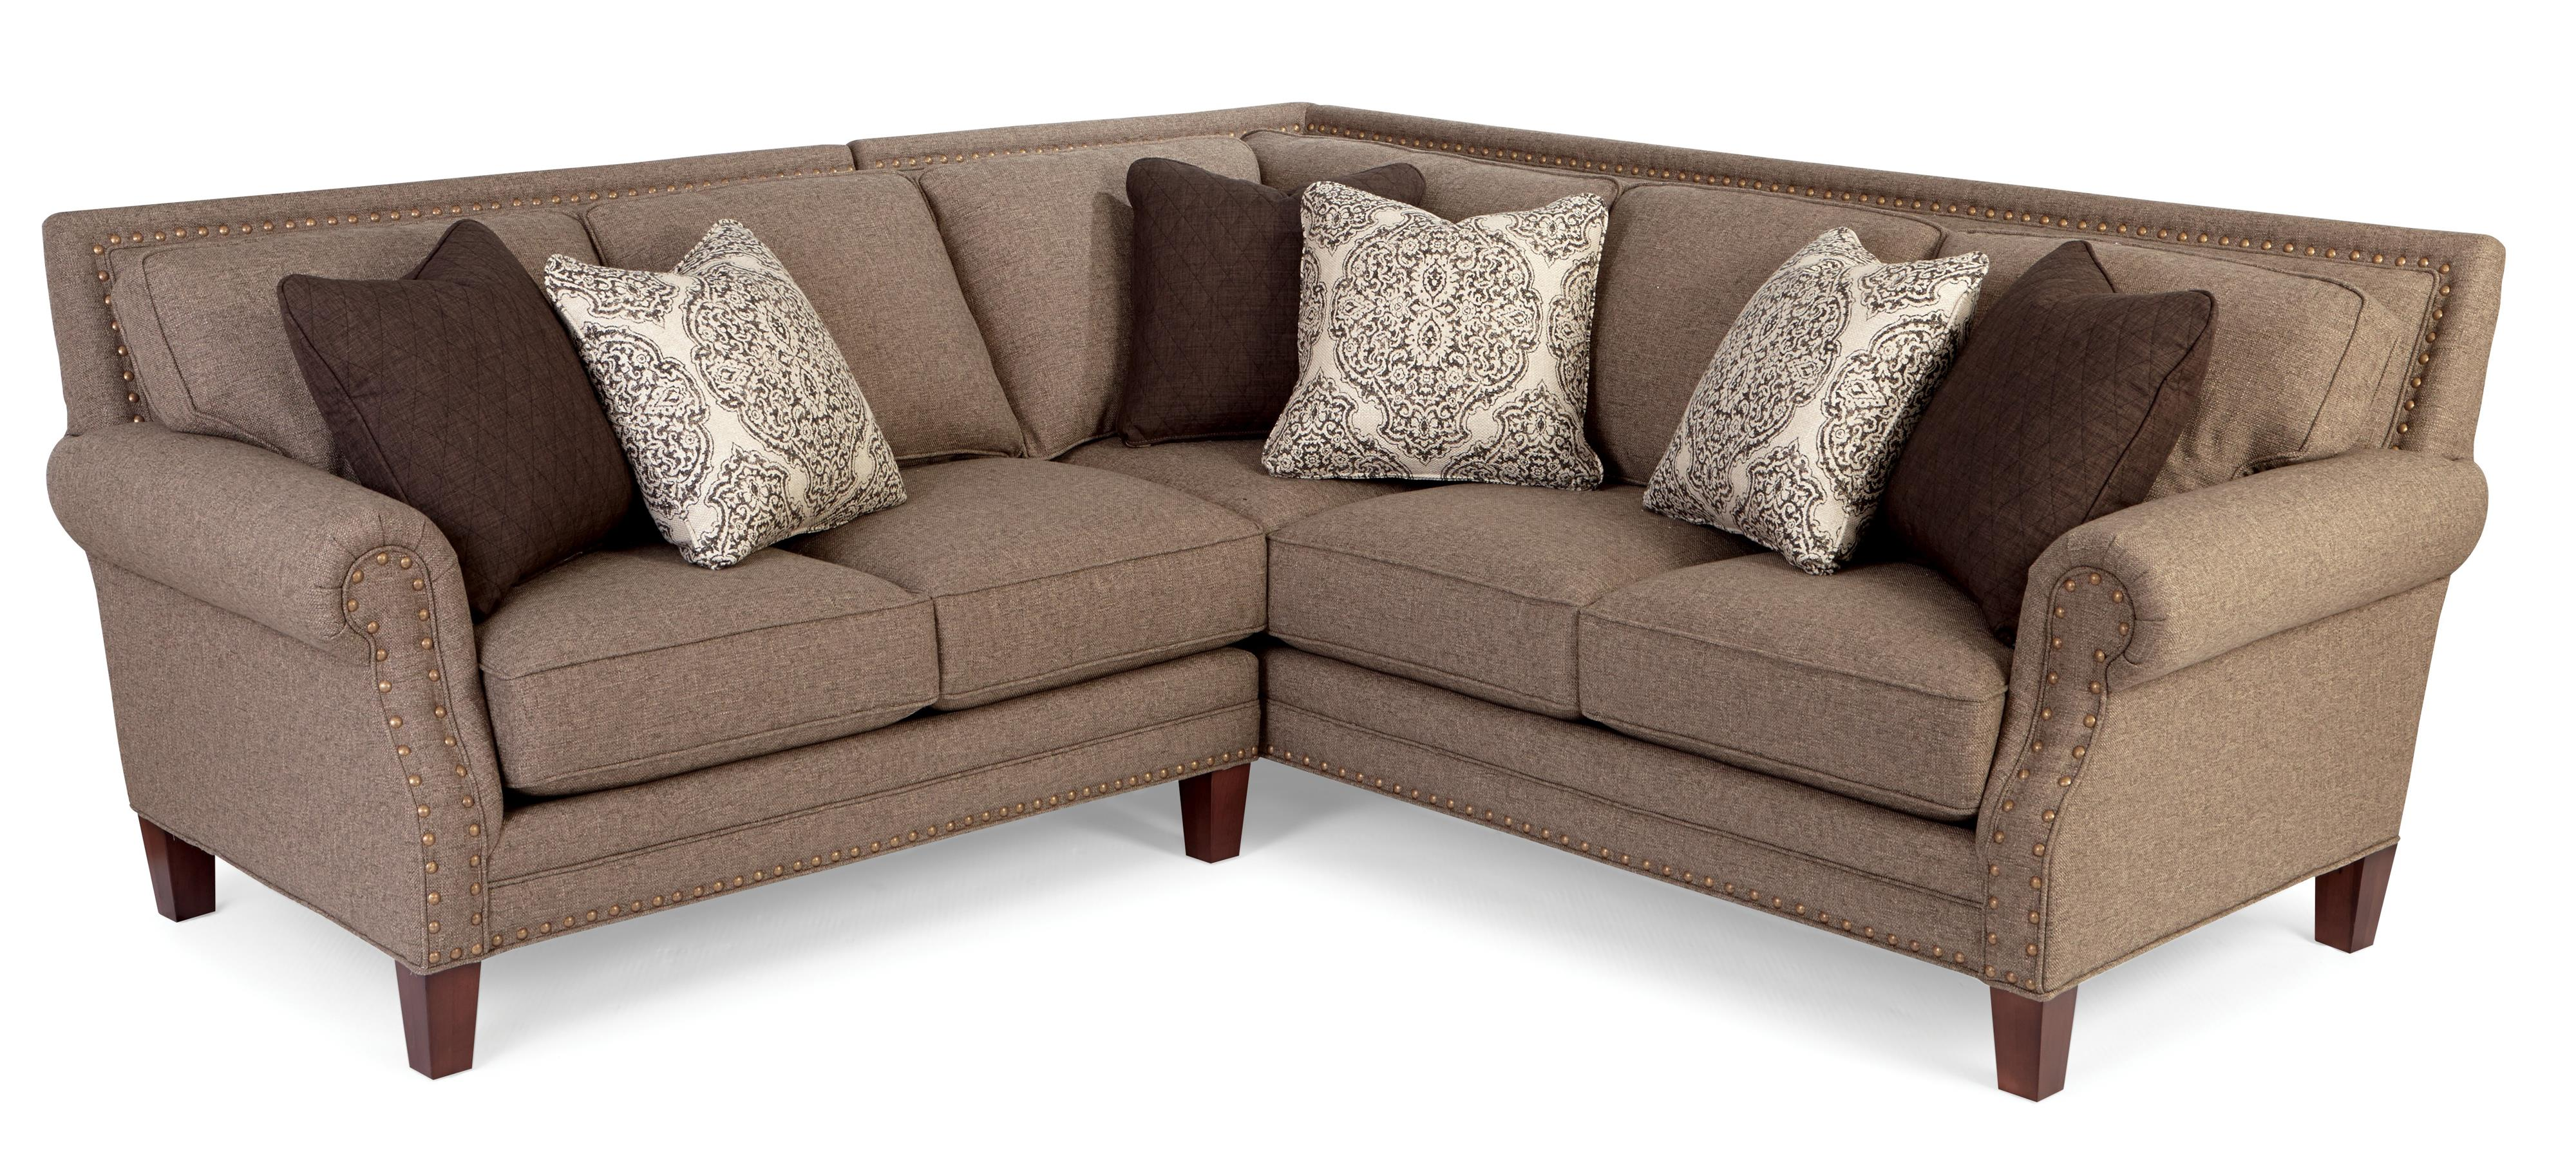 Superieur Two Piece Sectional Sofa With Rolled Arms And Light Brass Nailheads